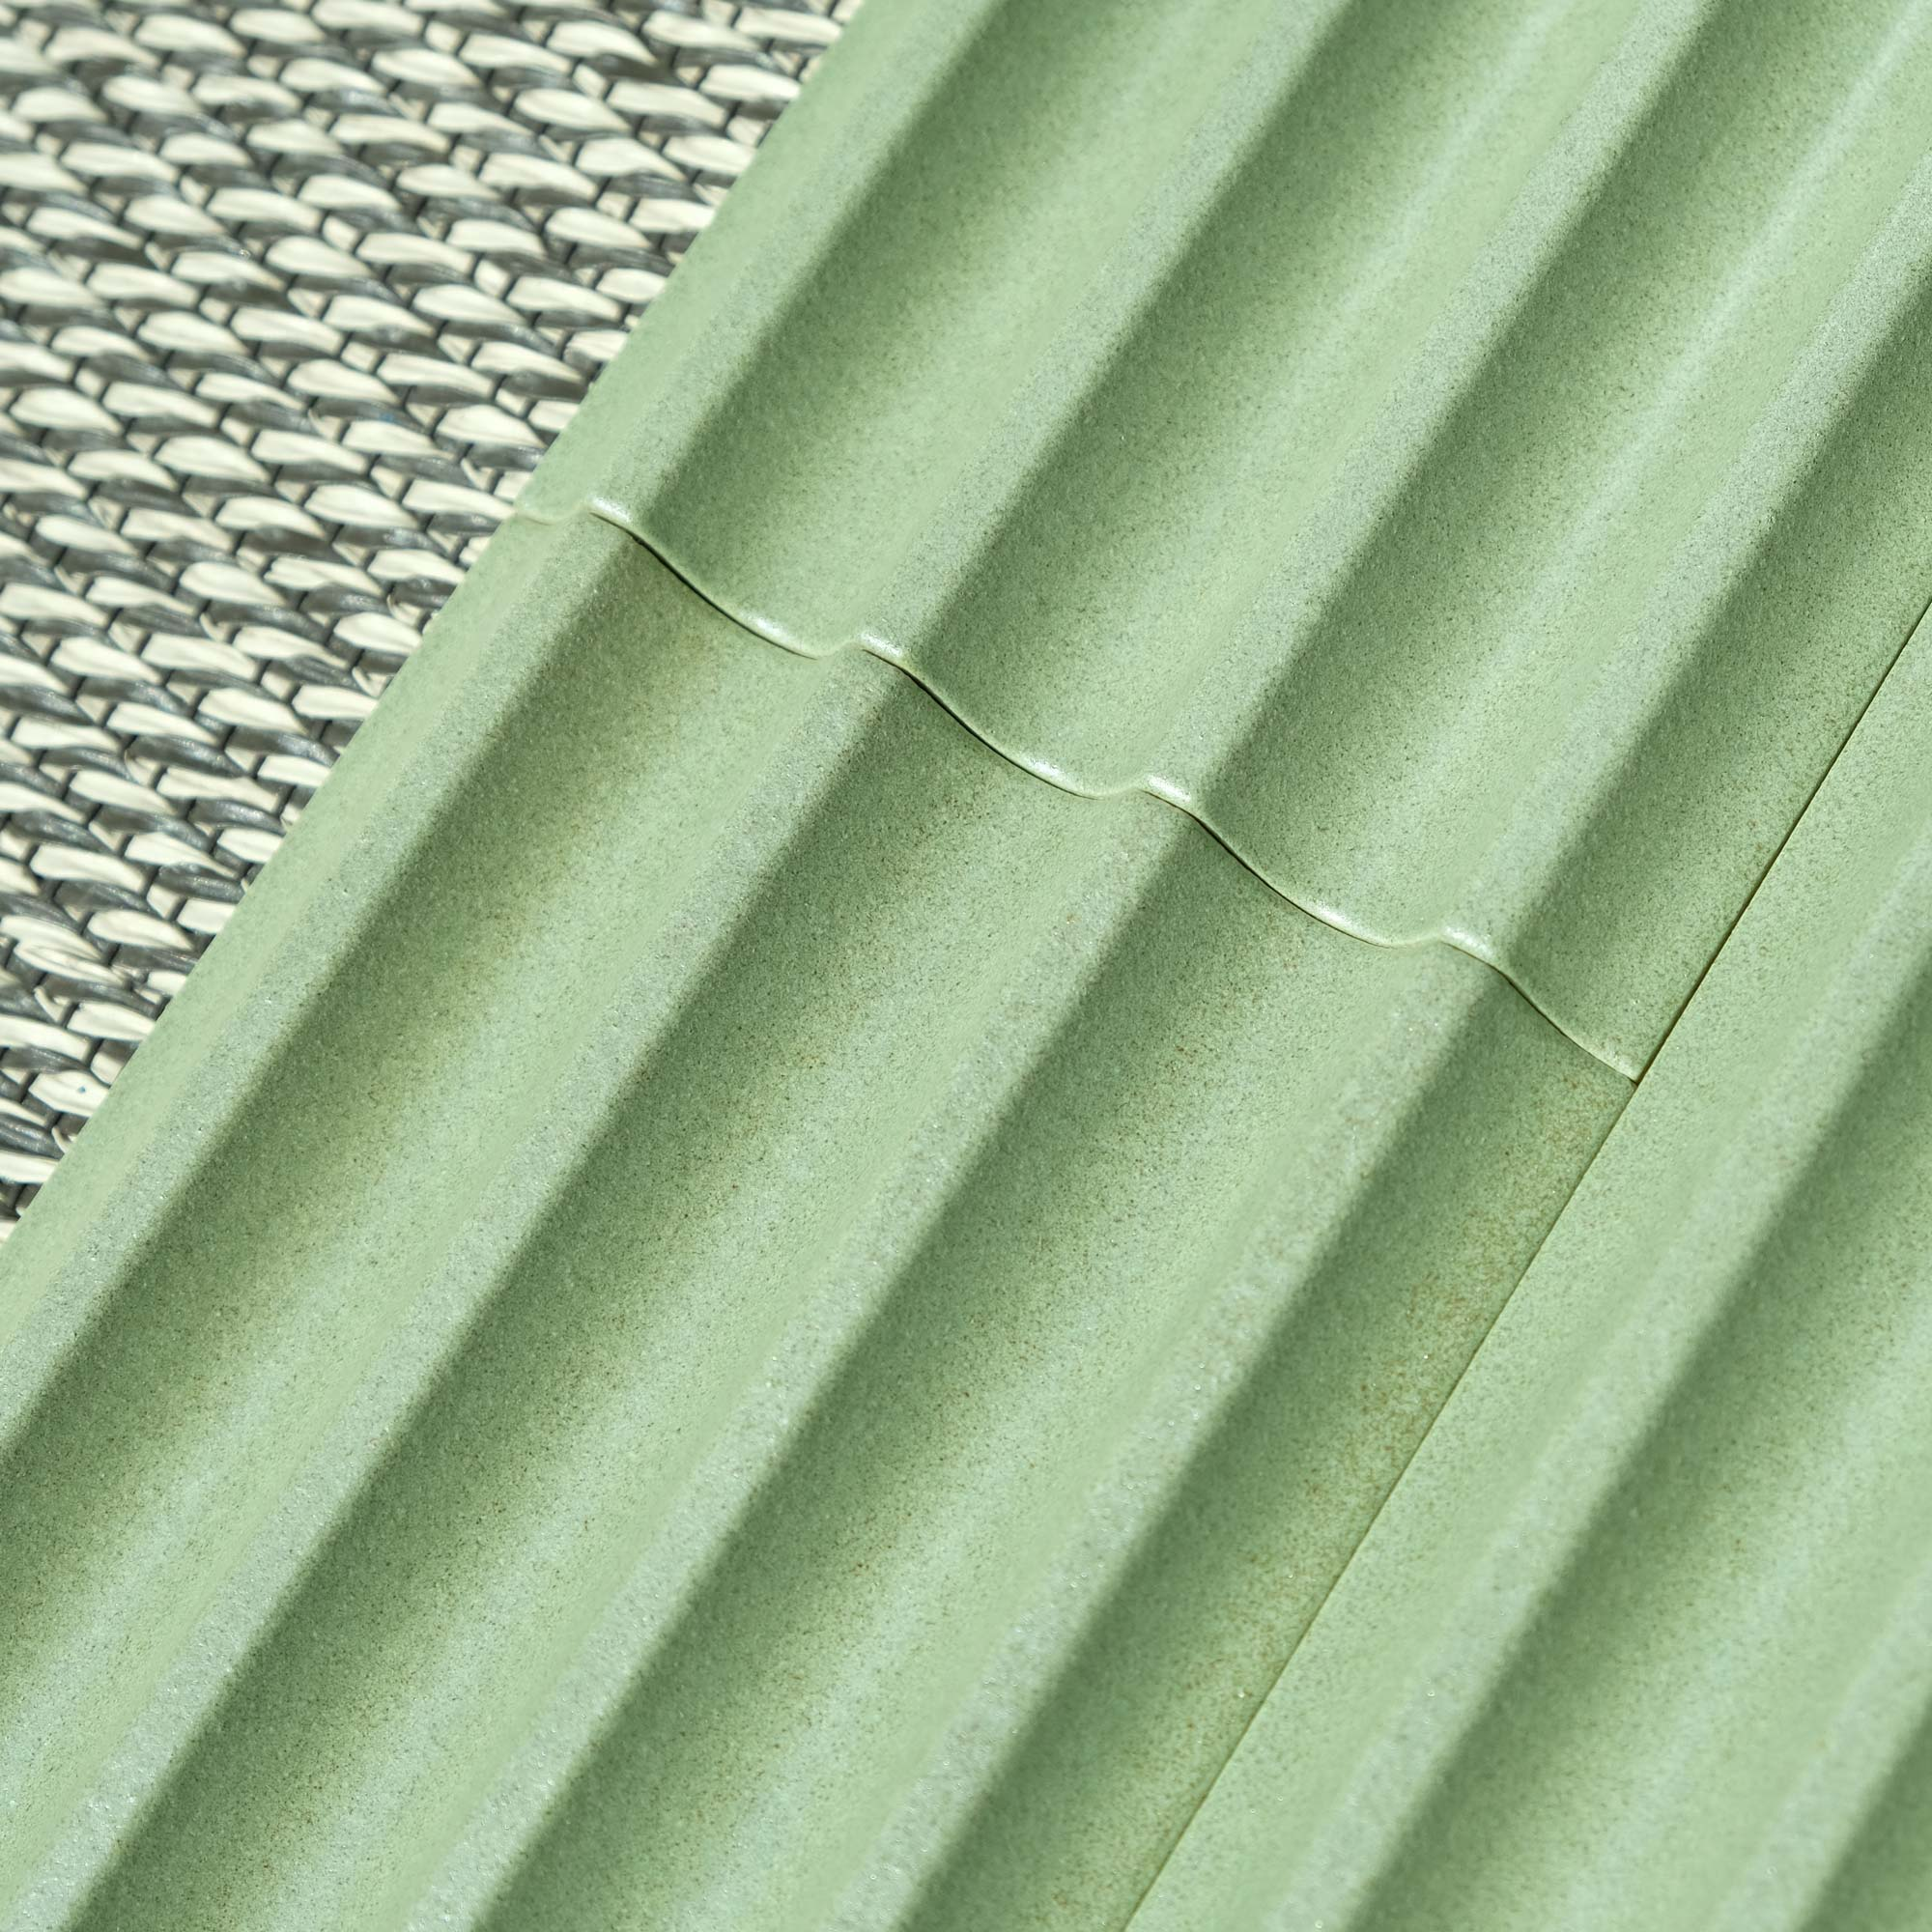 Fluted Ceramic Tile Green Matt - Matter of Stuff Fluted ceramic tiles are characterised by a smooth rippled surface.  Perfect to design Interior walls and bar front with sinuous flutes, multi-faceted patterns and elegant reliefs.  The tiles sized cm 10.5×21.5 x h max 1.5 cm and add a sense of movement through the introduction of their 3D surfaces profile, playing with shadow, light and tactility.  Fluted Tiles are produced in accordance with a hand-crafted technique which makes the material heterogeneous, both in the effects on the surface and in the dimension of the pieces.  Custom glazing colours and effect are available.  Get in touch to produce a bespoke fluted profile at bespoke@matterofstuff.com   Matter of Stuff